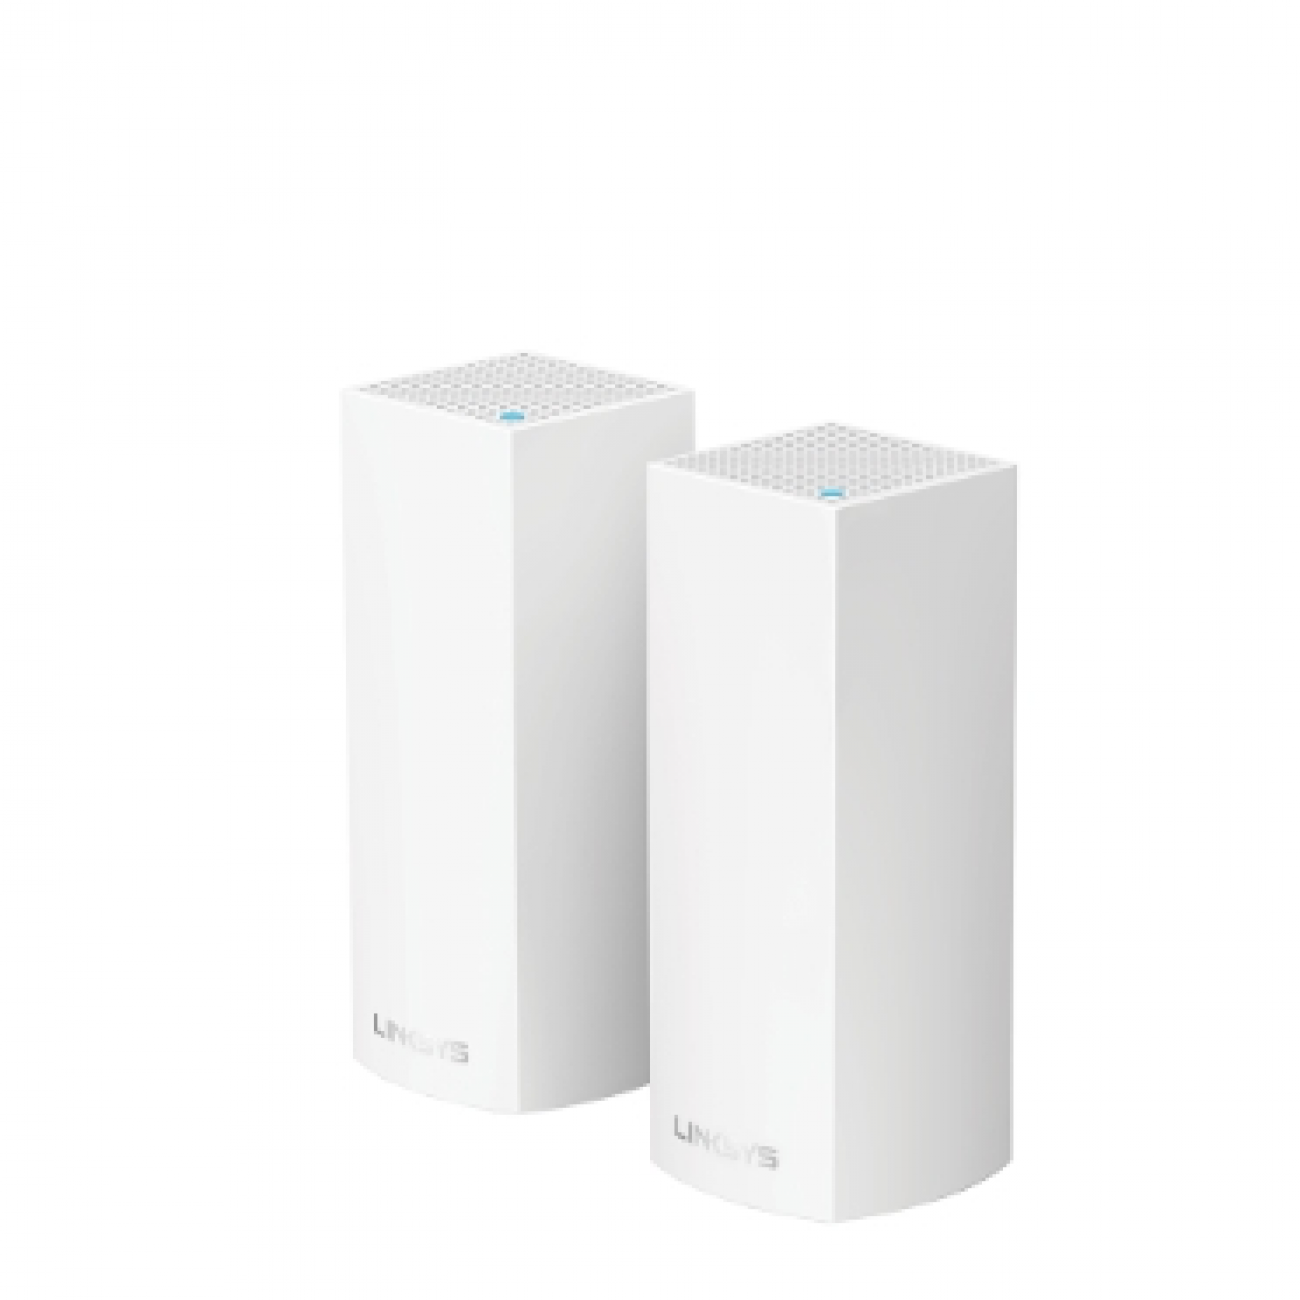 LINKSYS VELOP WHW0302-AH TRI-BAND AC4400 INTELLIGENT MESH WIFI SYSTEM WIFI 5 MU-MIMO SYSTEM 2-PK